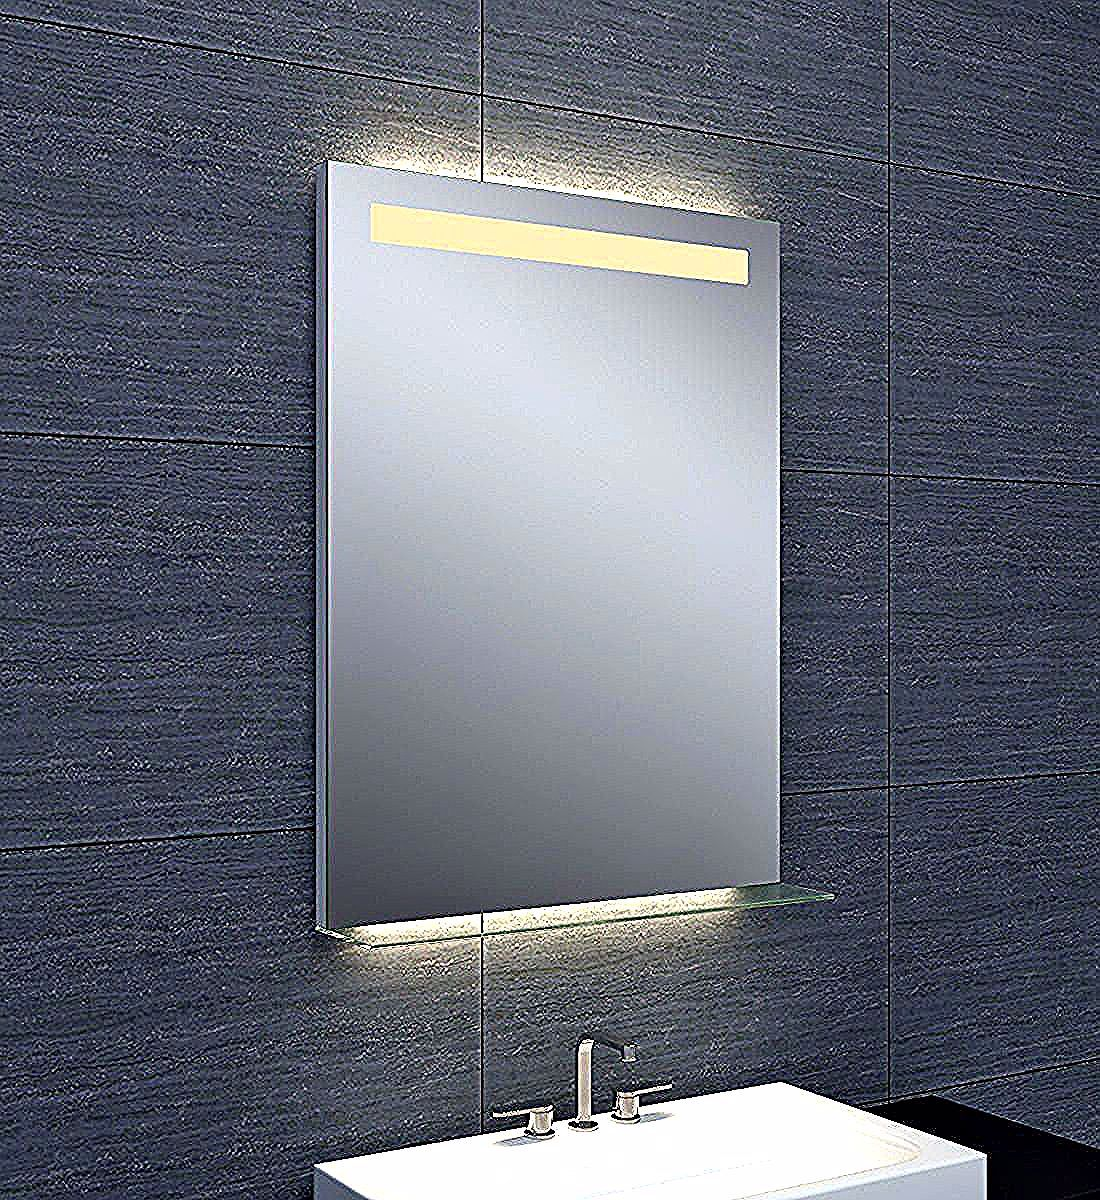 Hauteur Miroirs In 2020 Bathroom Mirror Lighted Bathroom Mirror Mirror